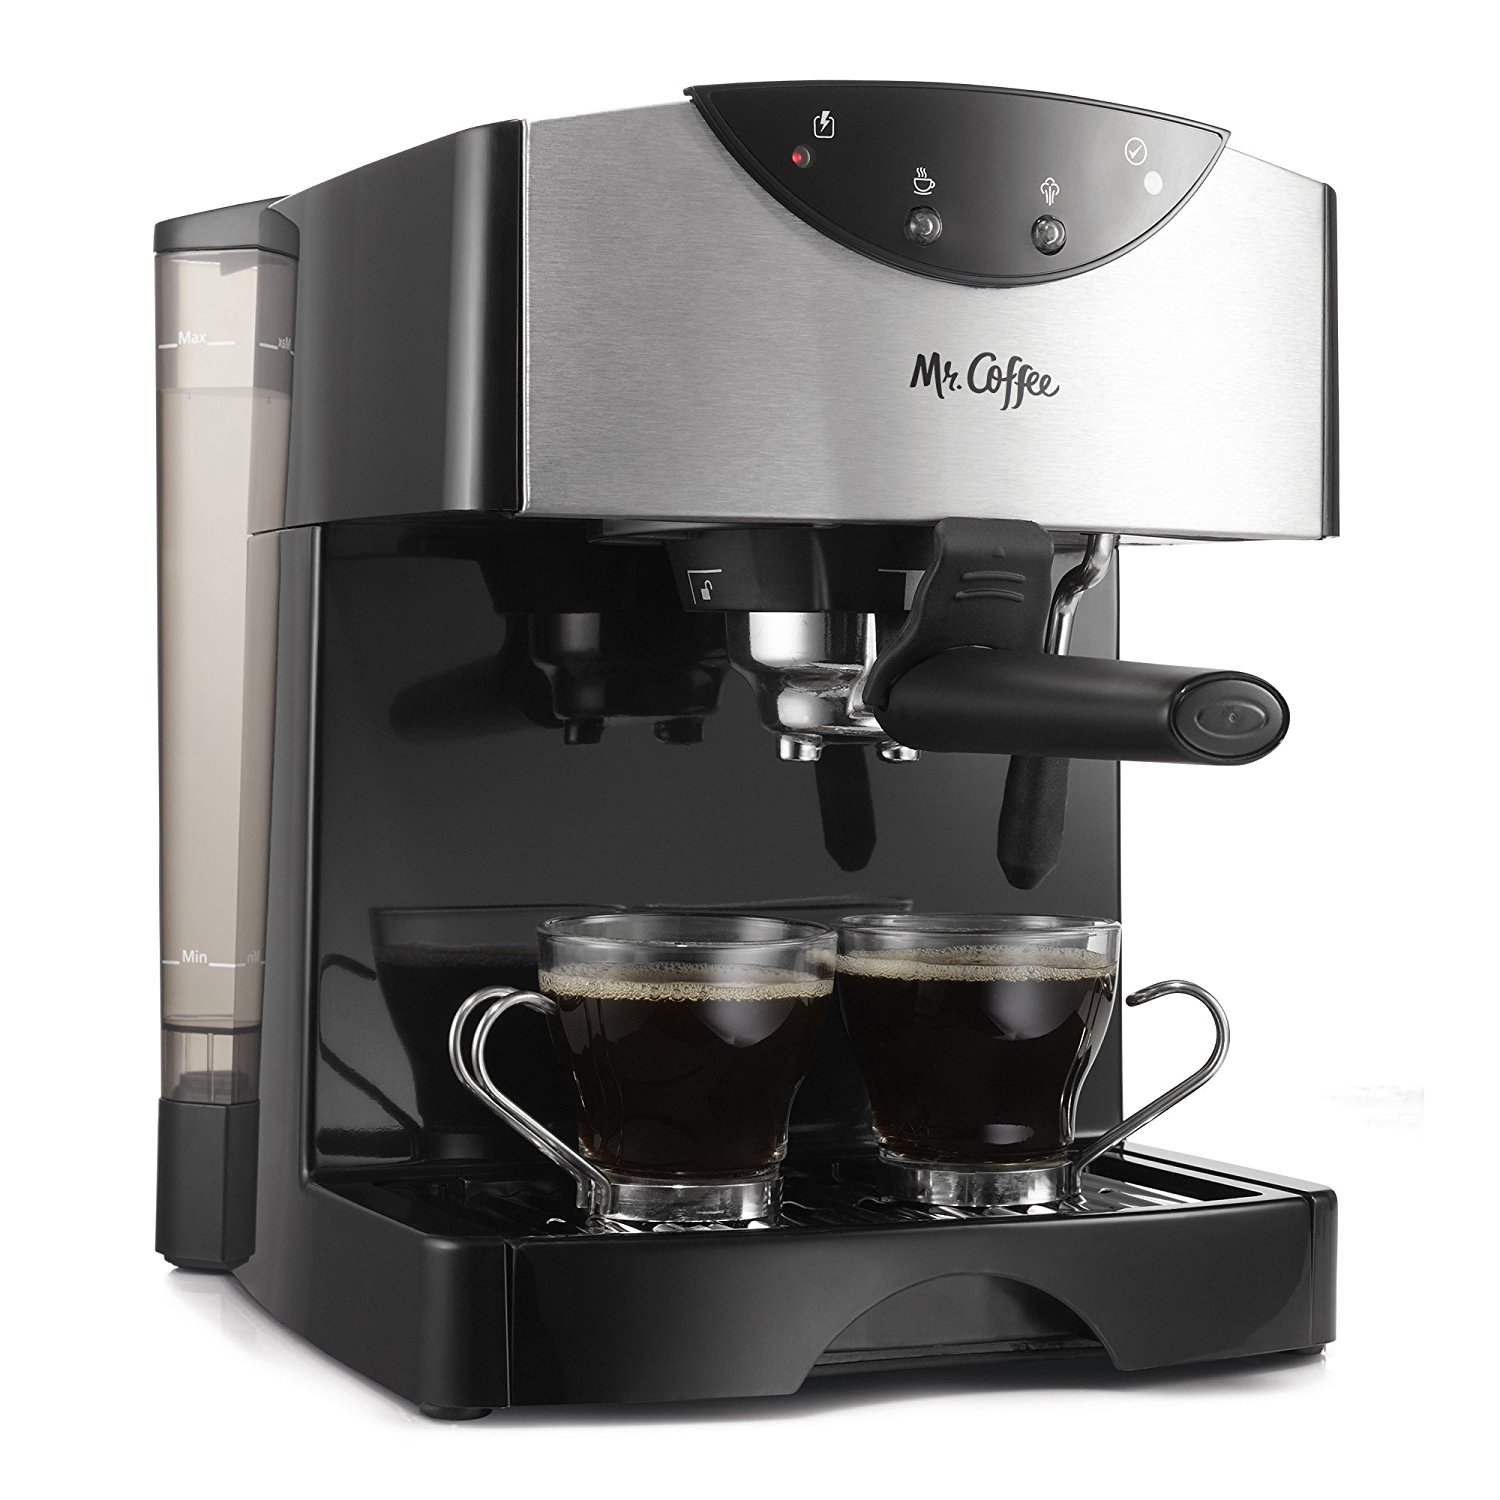 Mr. Coffee Steam Espresso Machine